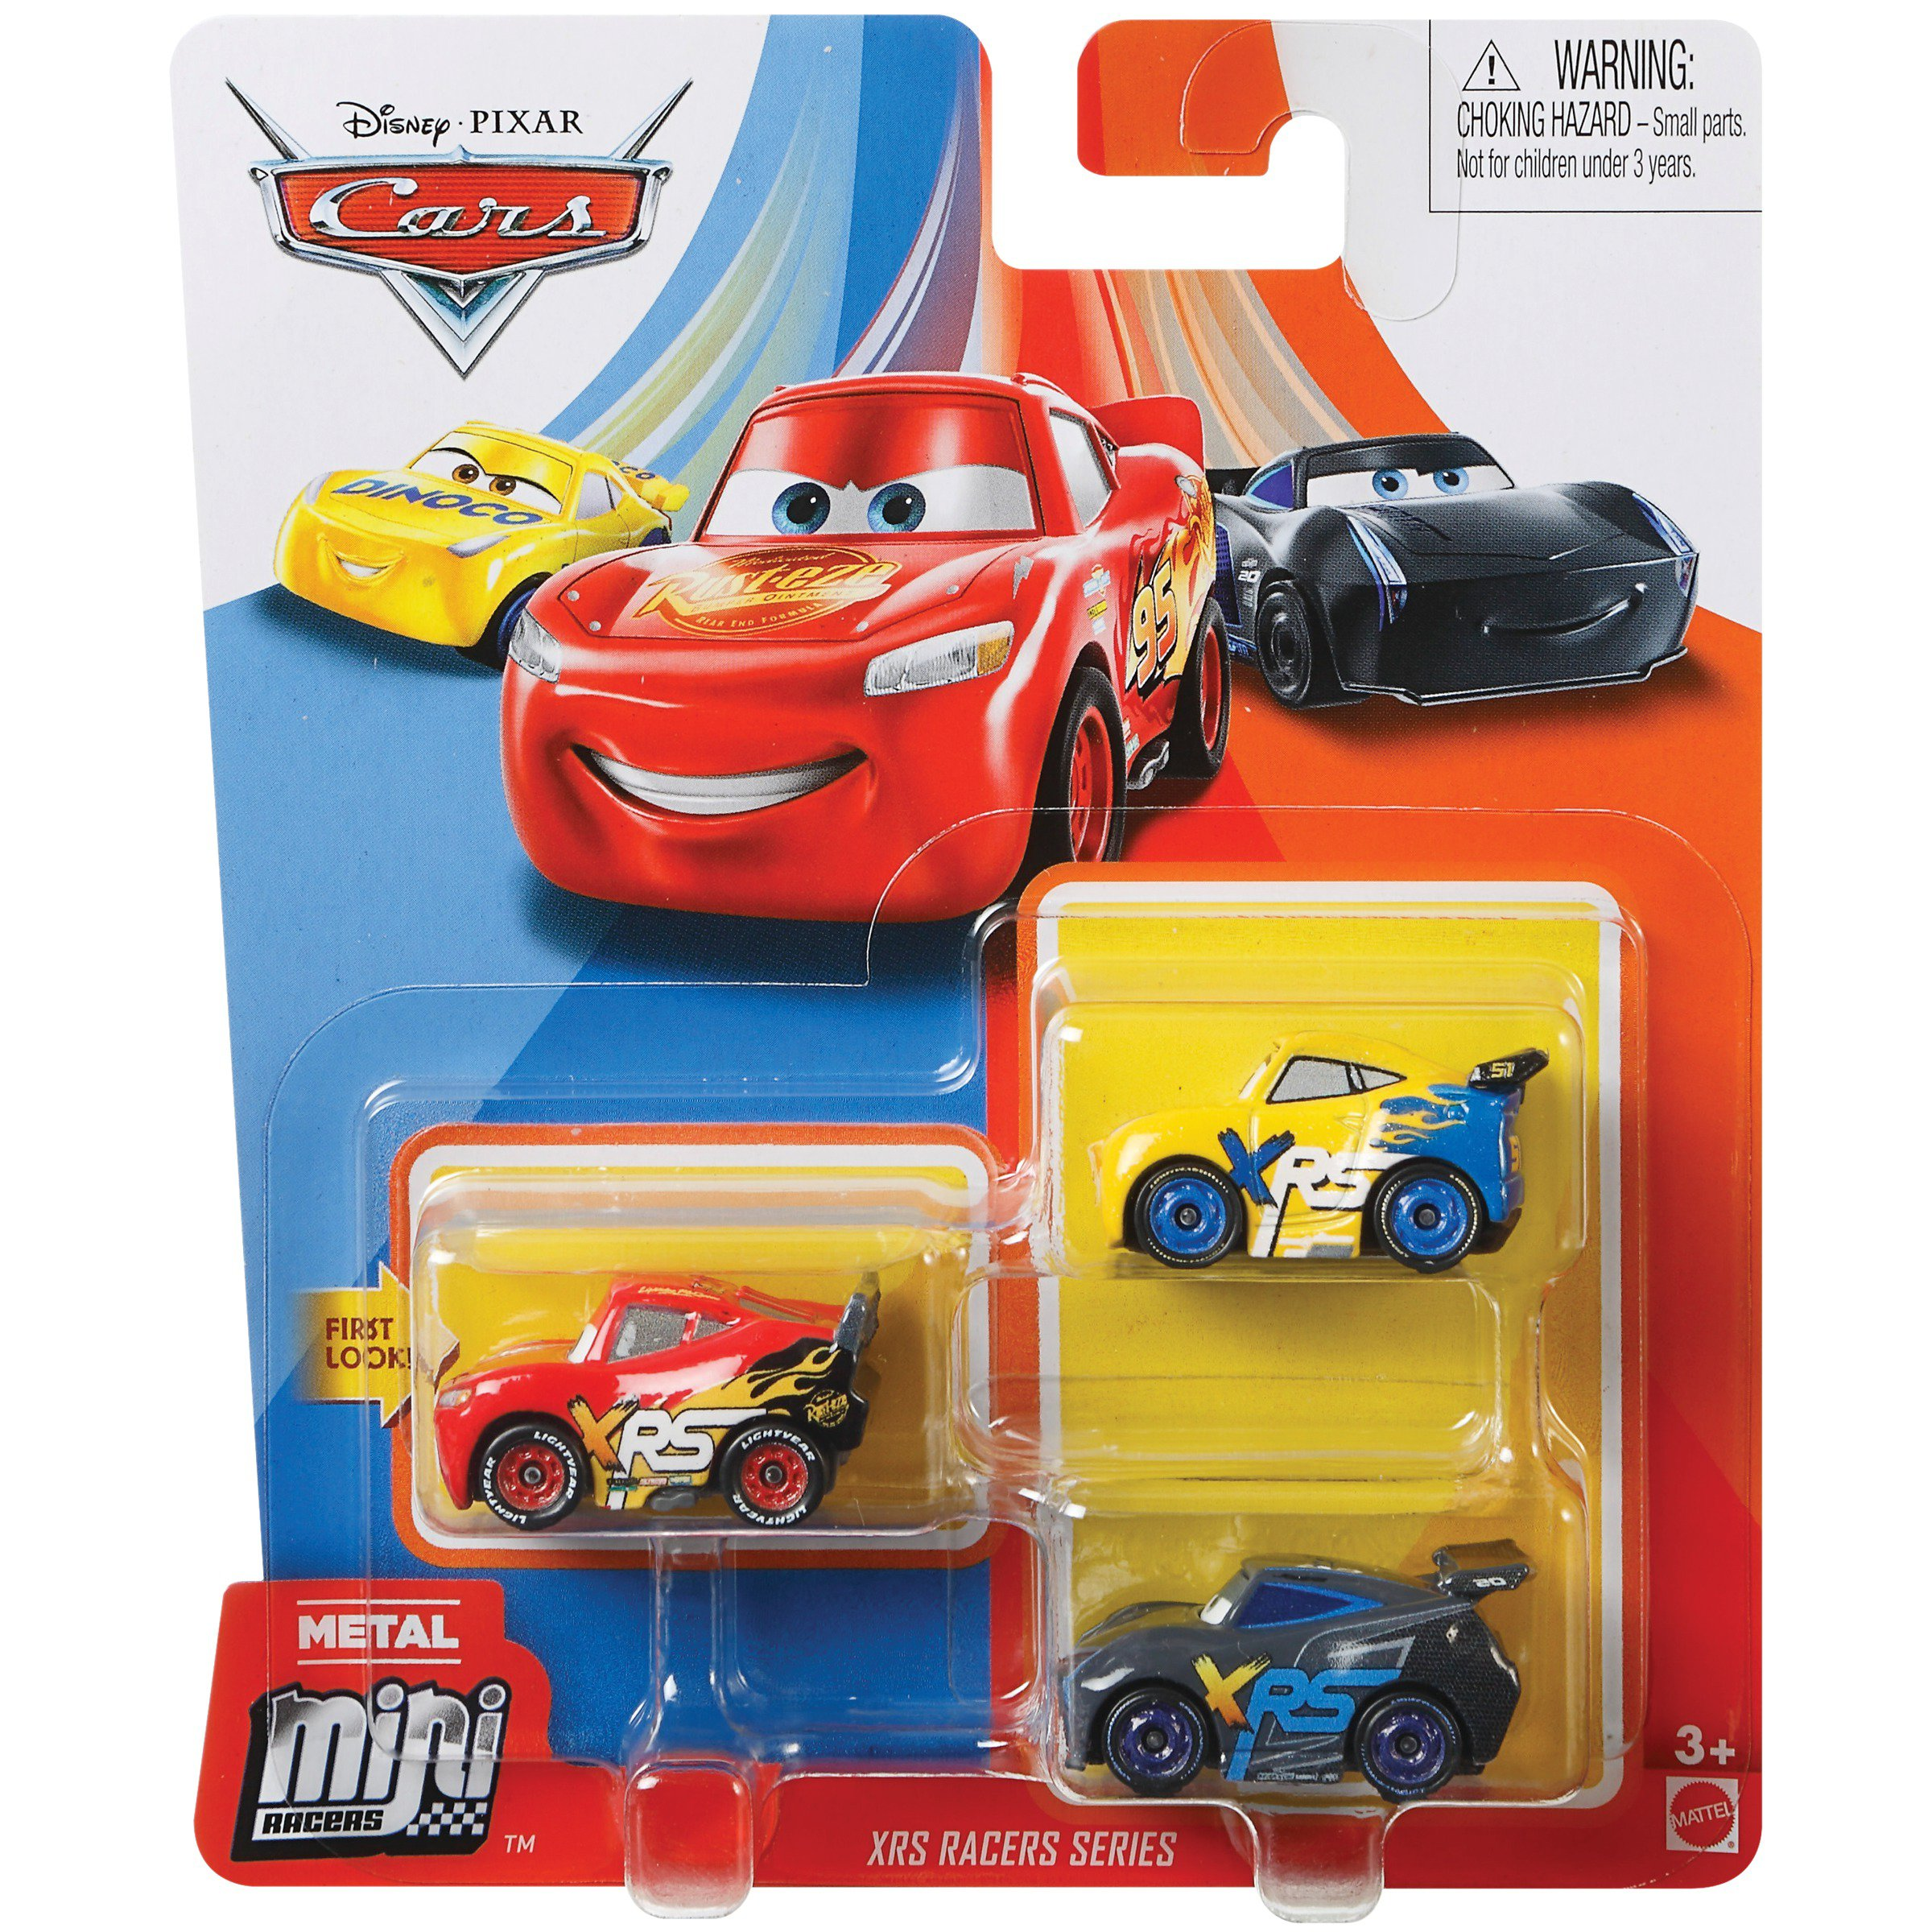 Disney Pixar Cars Mini Racers Assorted Shop Toy Vehicles At H E B